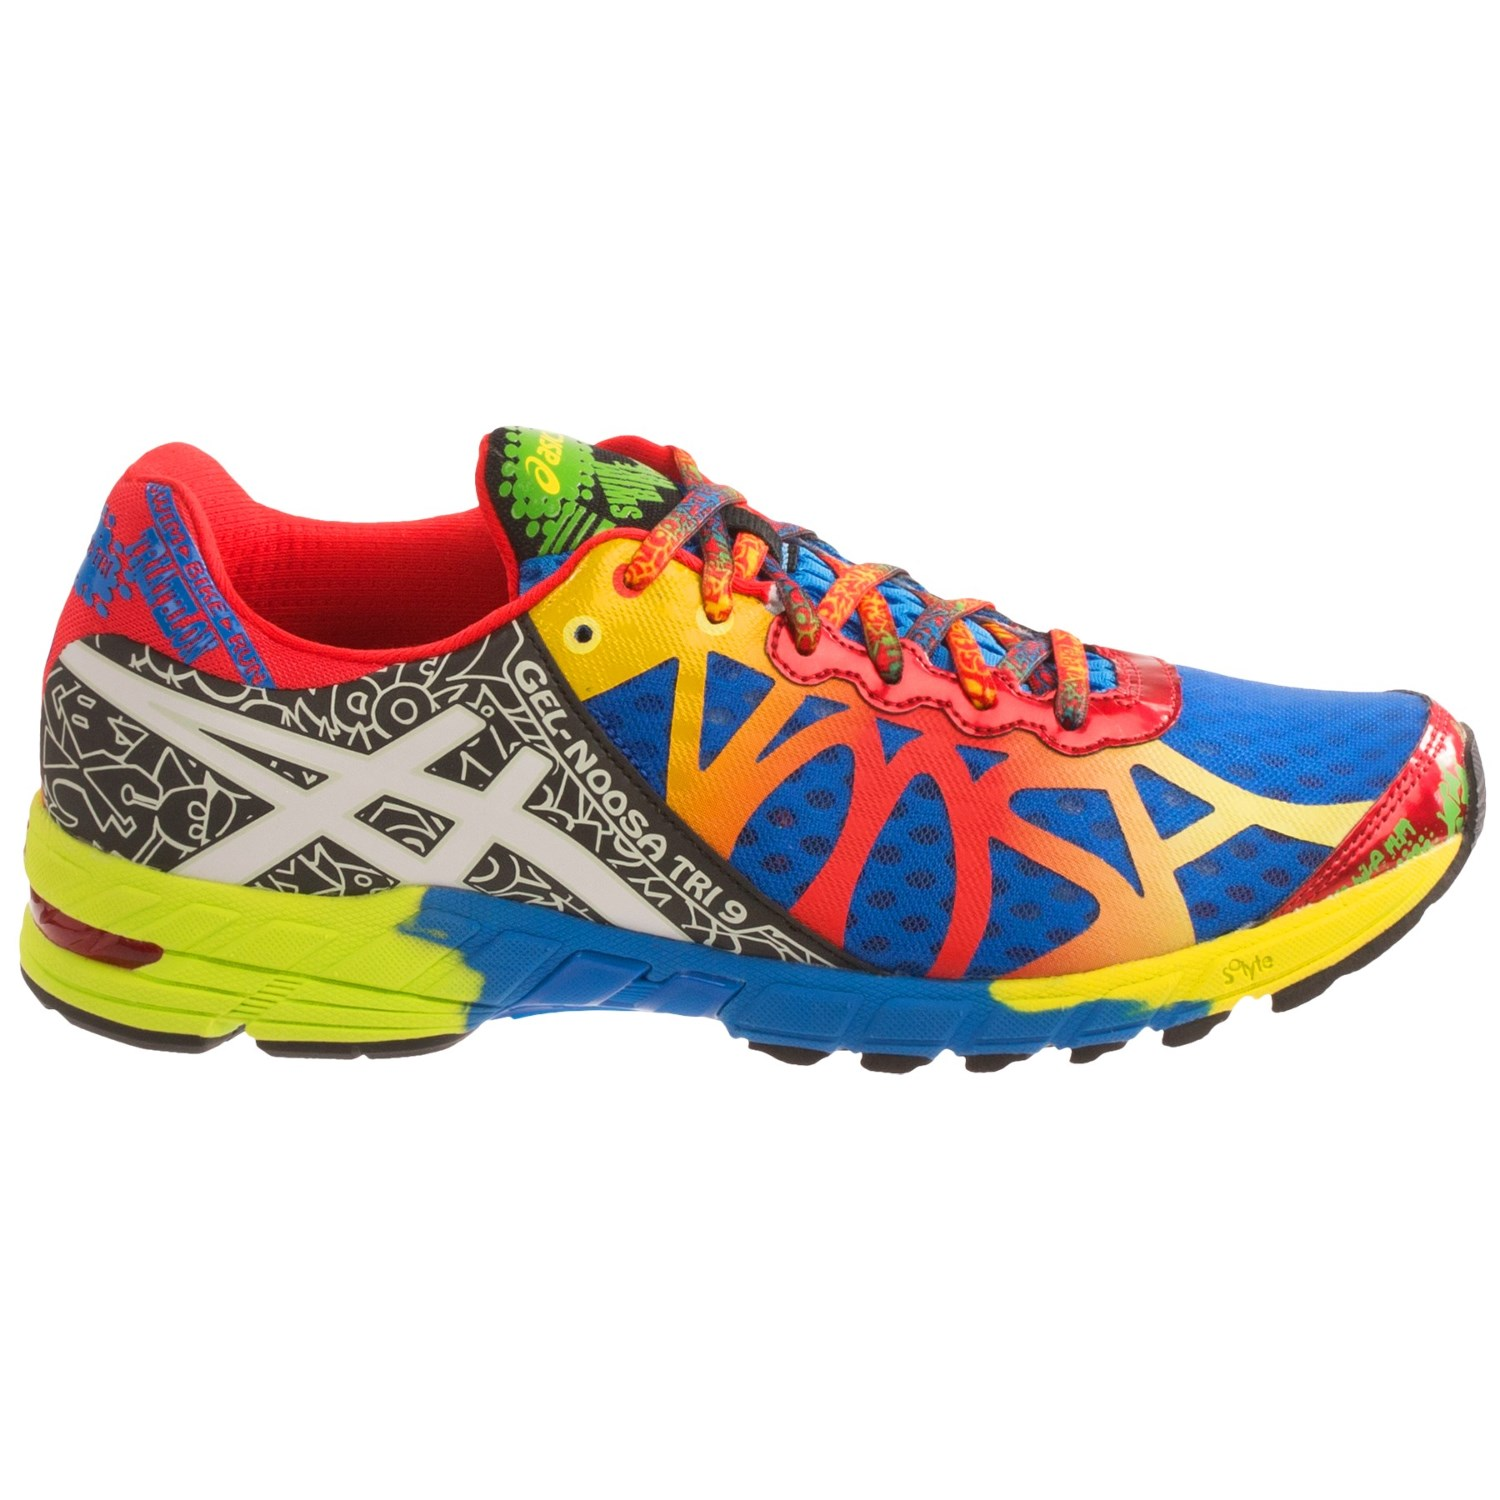 Asics Womens Running Shoes Academy